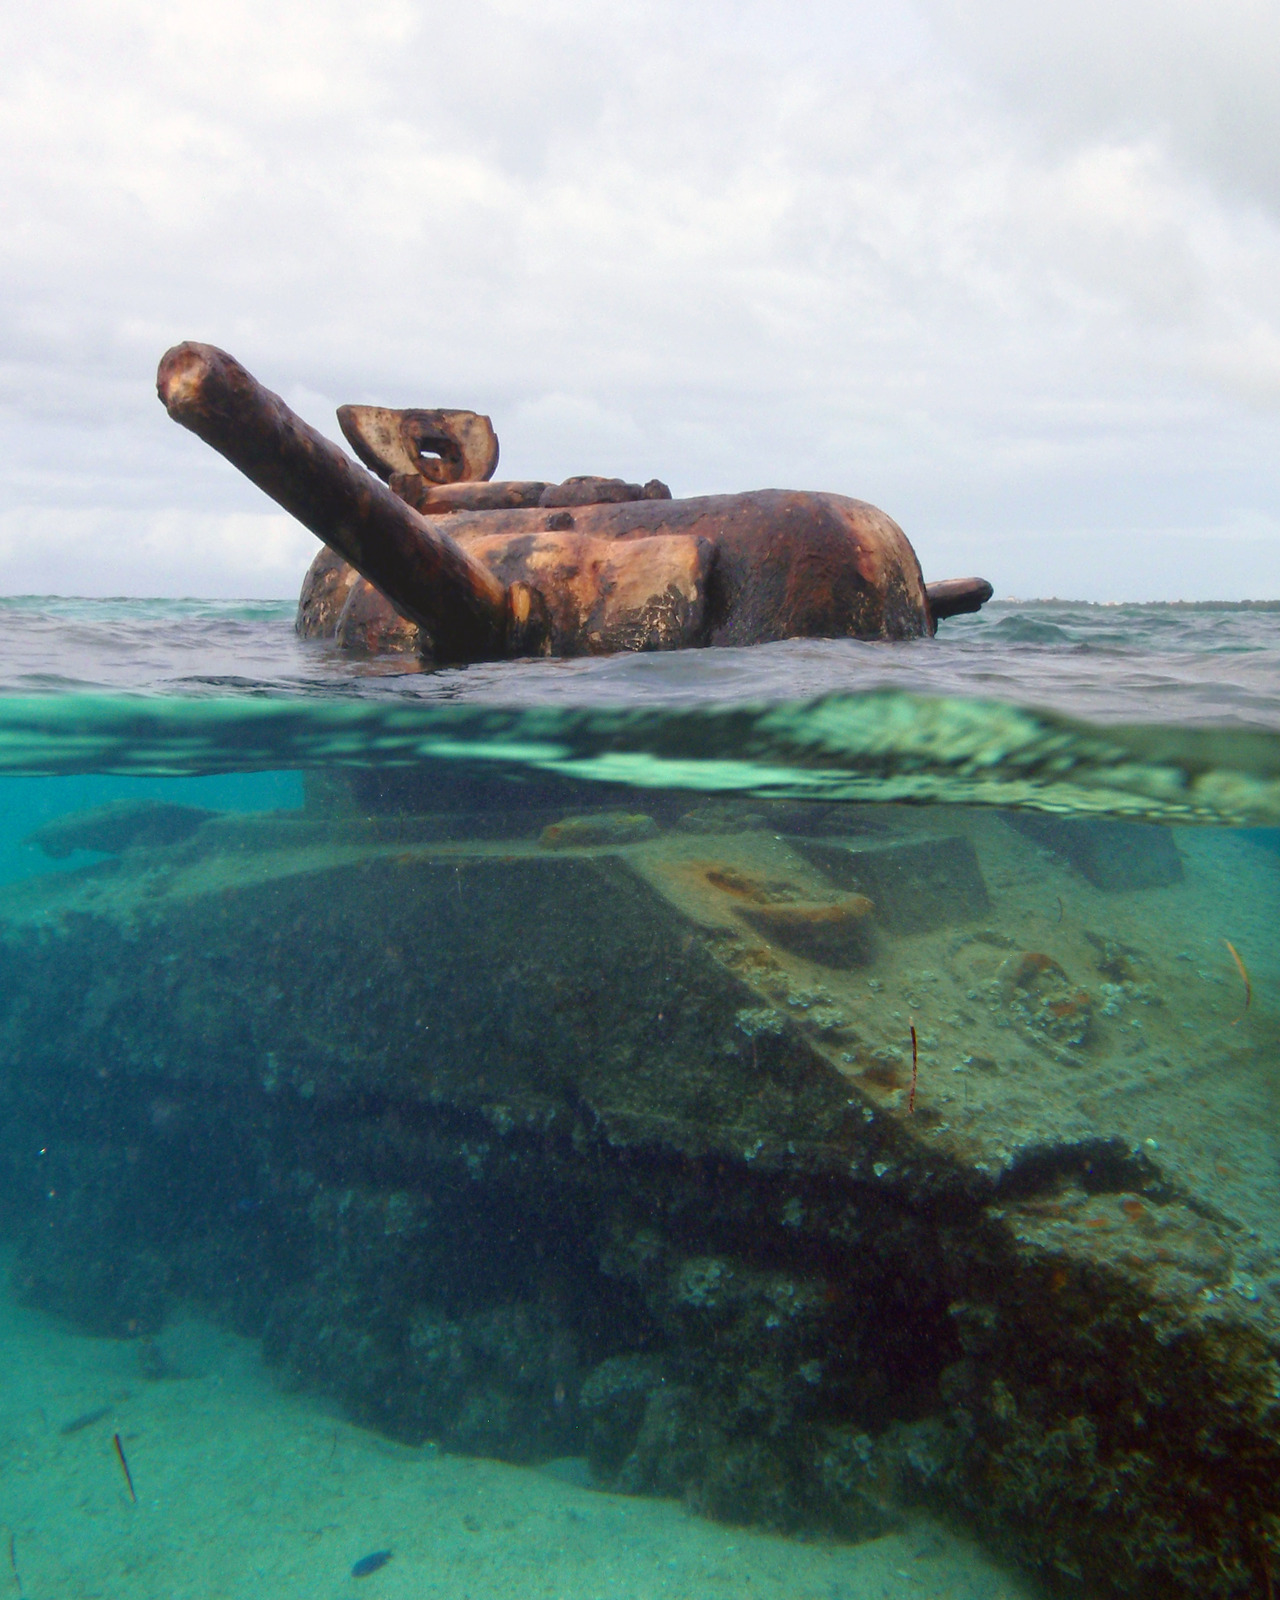 wolife:  This US M4 Sherman Tank was stranded on the reef during the invasion of the island of Saipan during WWII. Its turret is still frozen in time, taking aim at a Japanese gun emplacement on the beach. G spotted this in the surf while we were on the way to the airport and we just HAD to swim out to it.  Being able to take this photograph made for the GREATEST 30th birthday present.